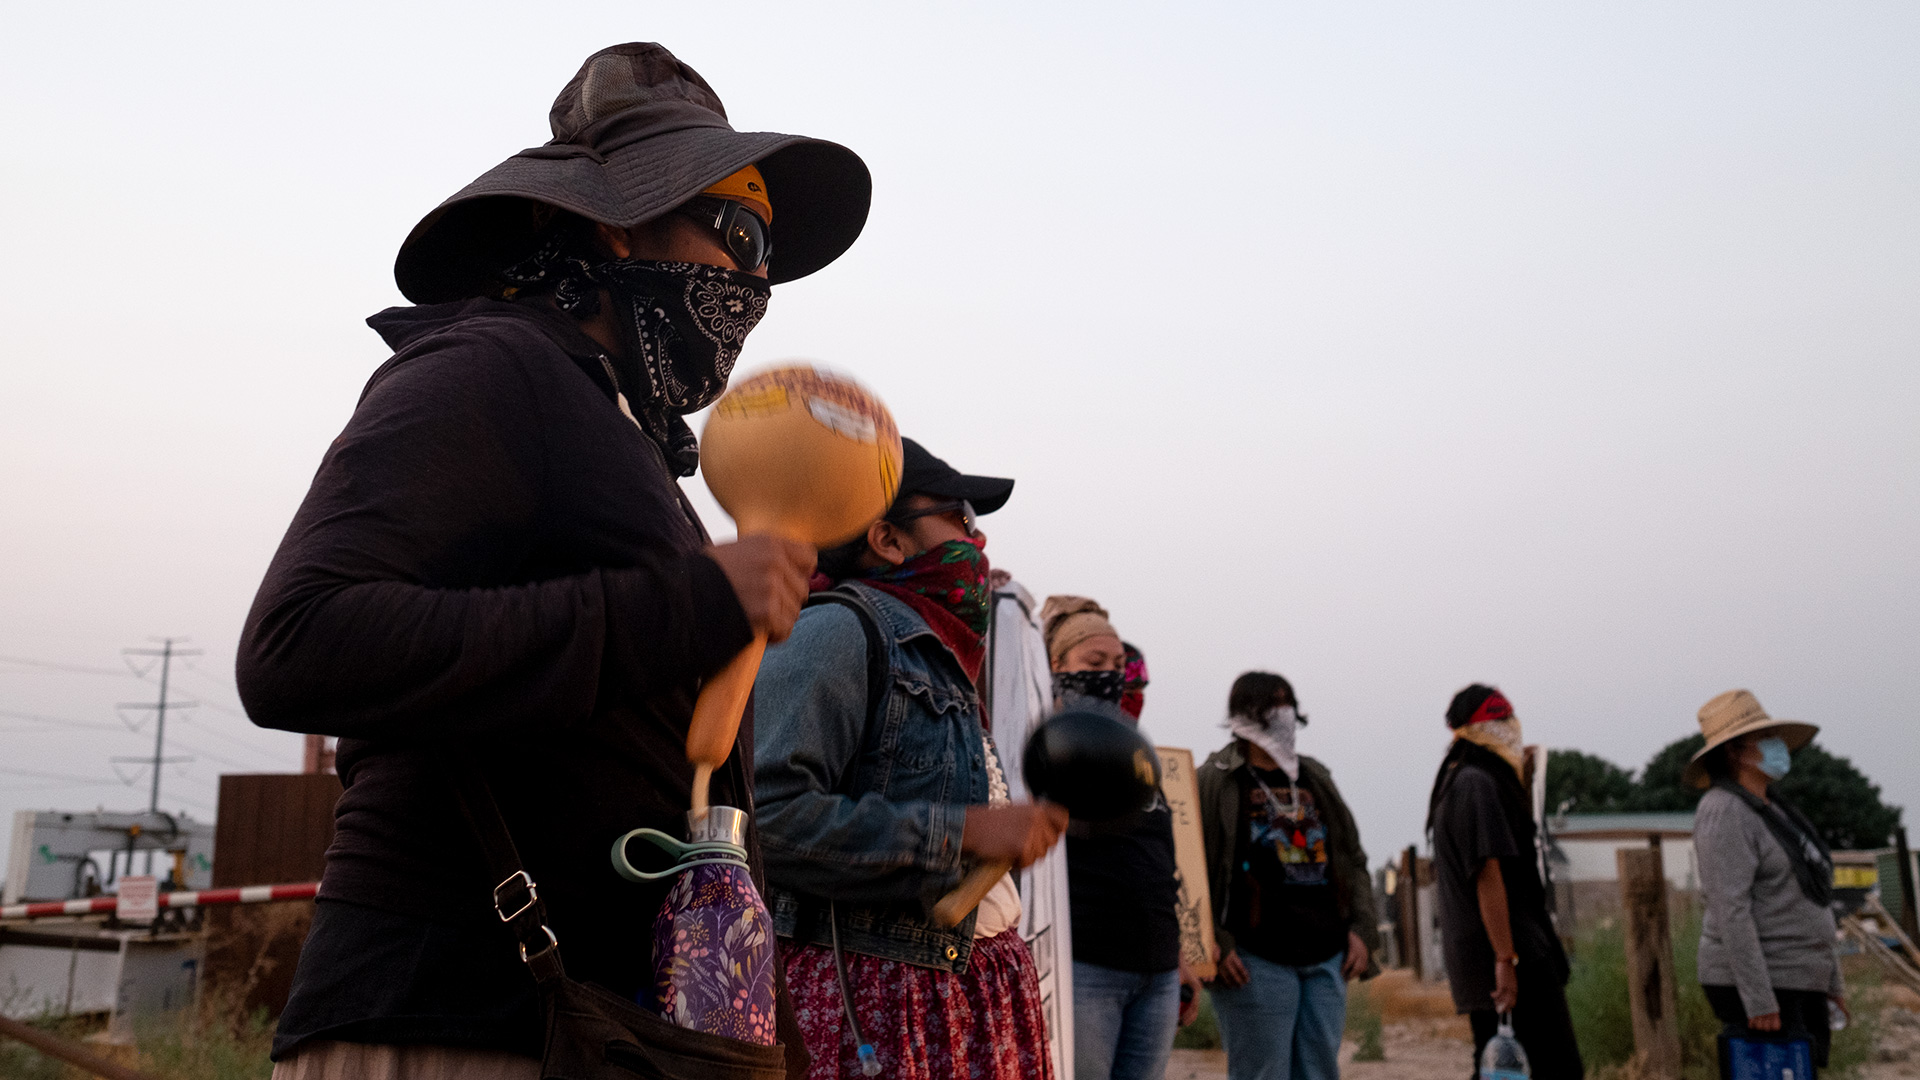 An Indigenous demonstrator shakes a rattle during the early morning protest in Coolidge on Aug. 26, 2020.